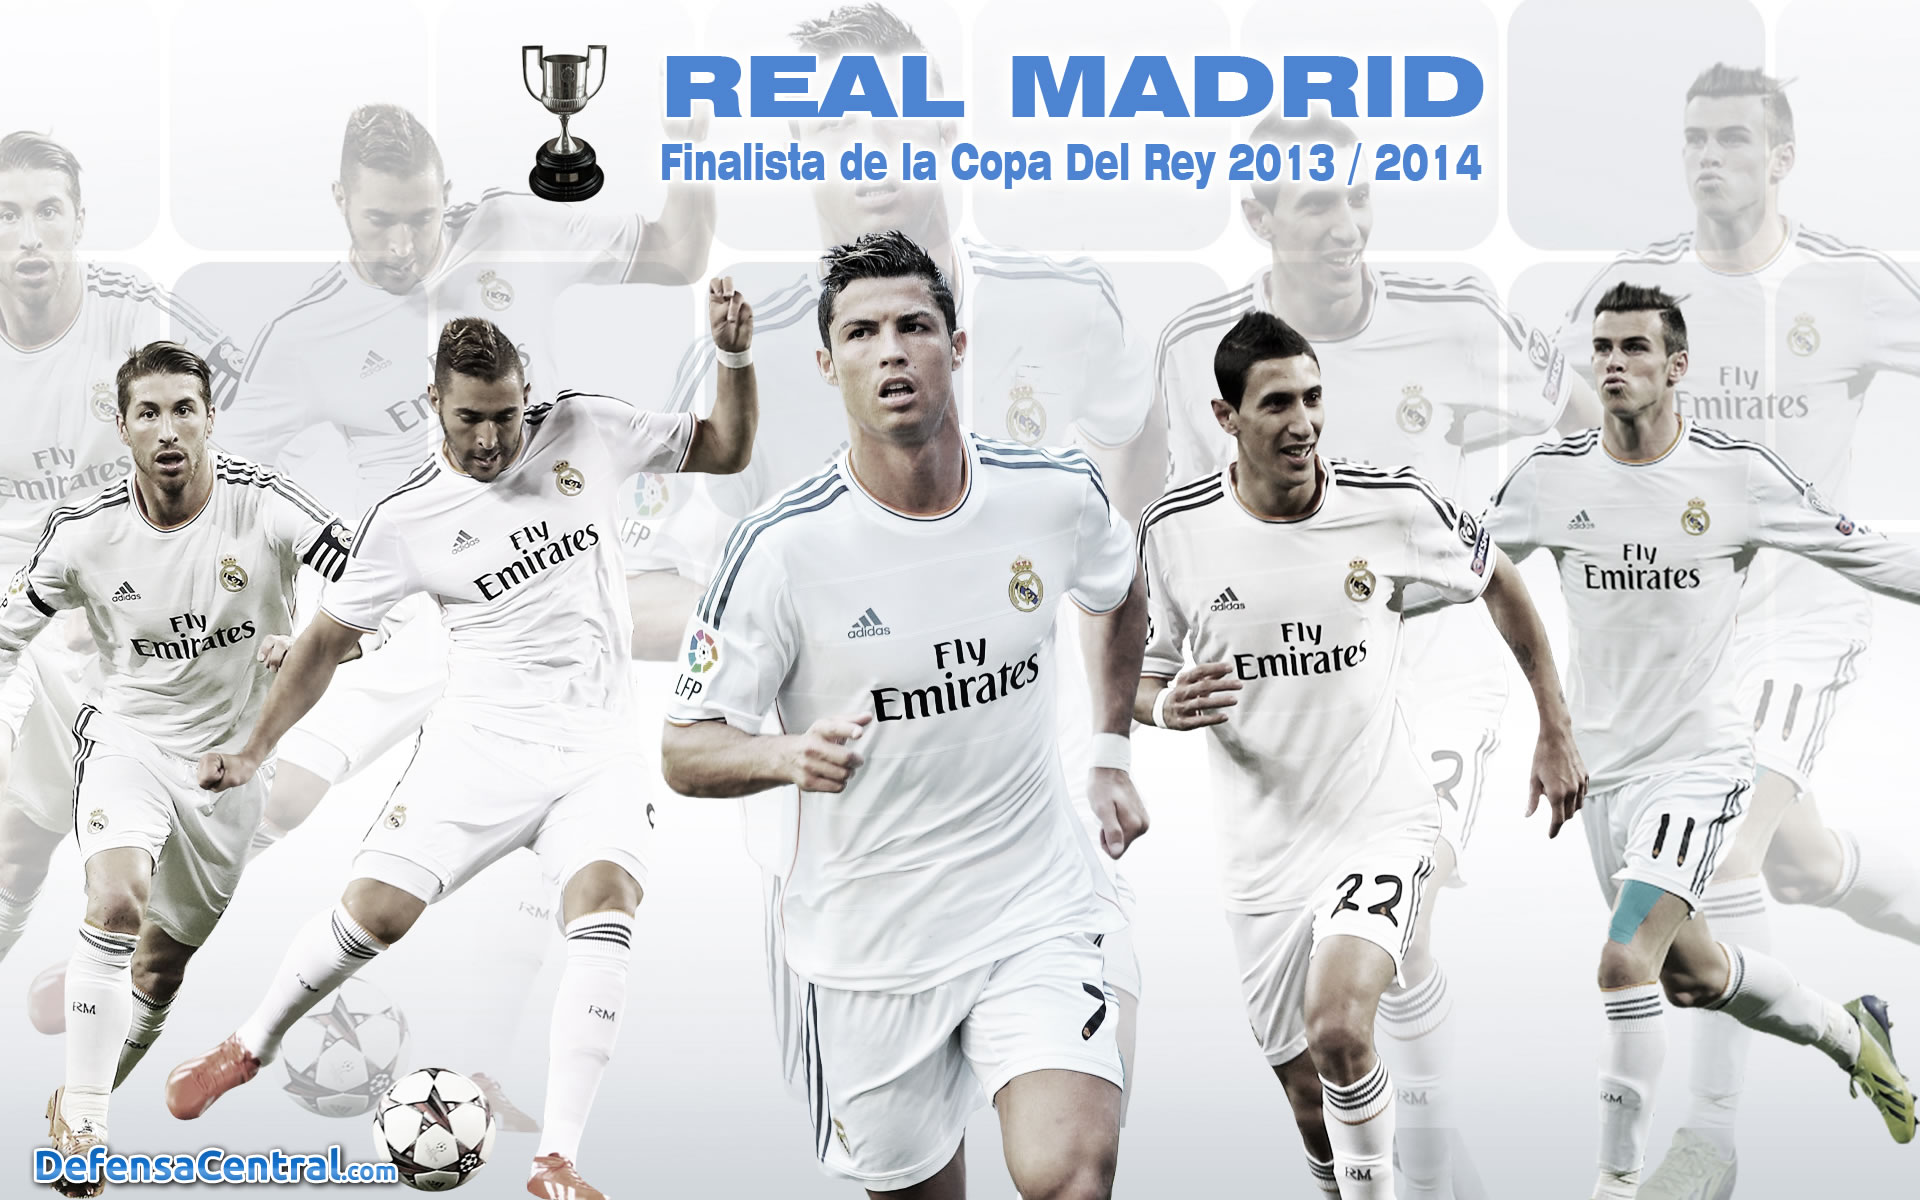 Wallpapers Del Real Madrid 2014 Finalista 300x187 1920x1200